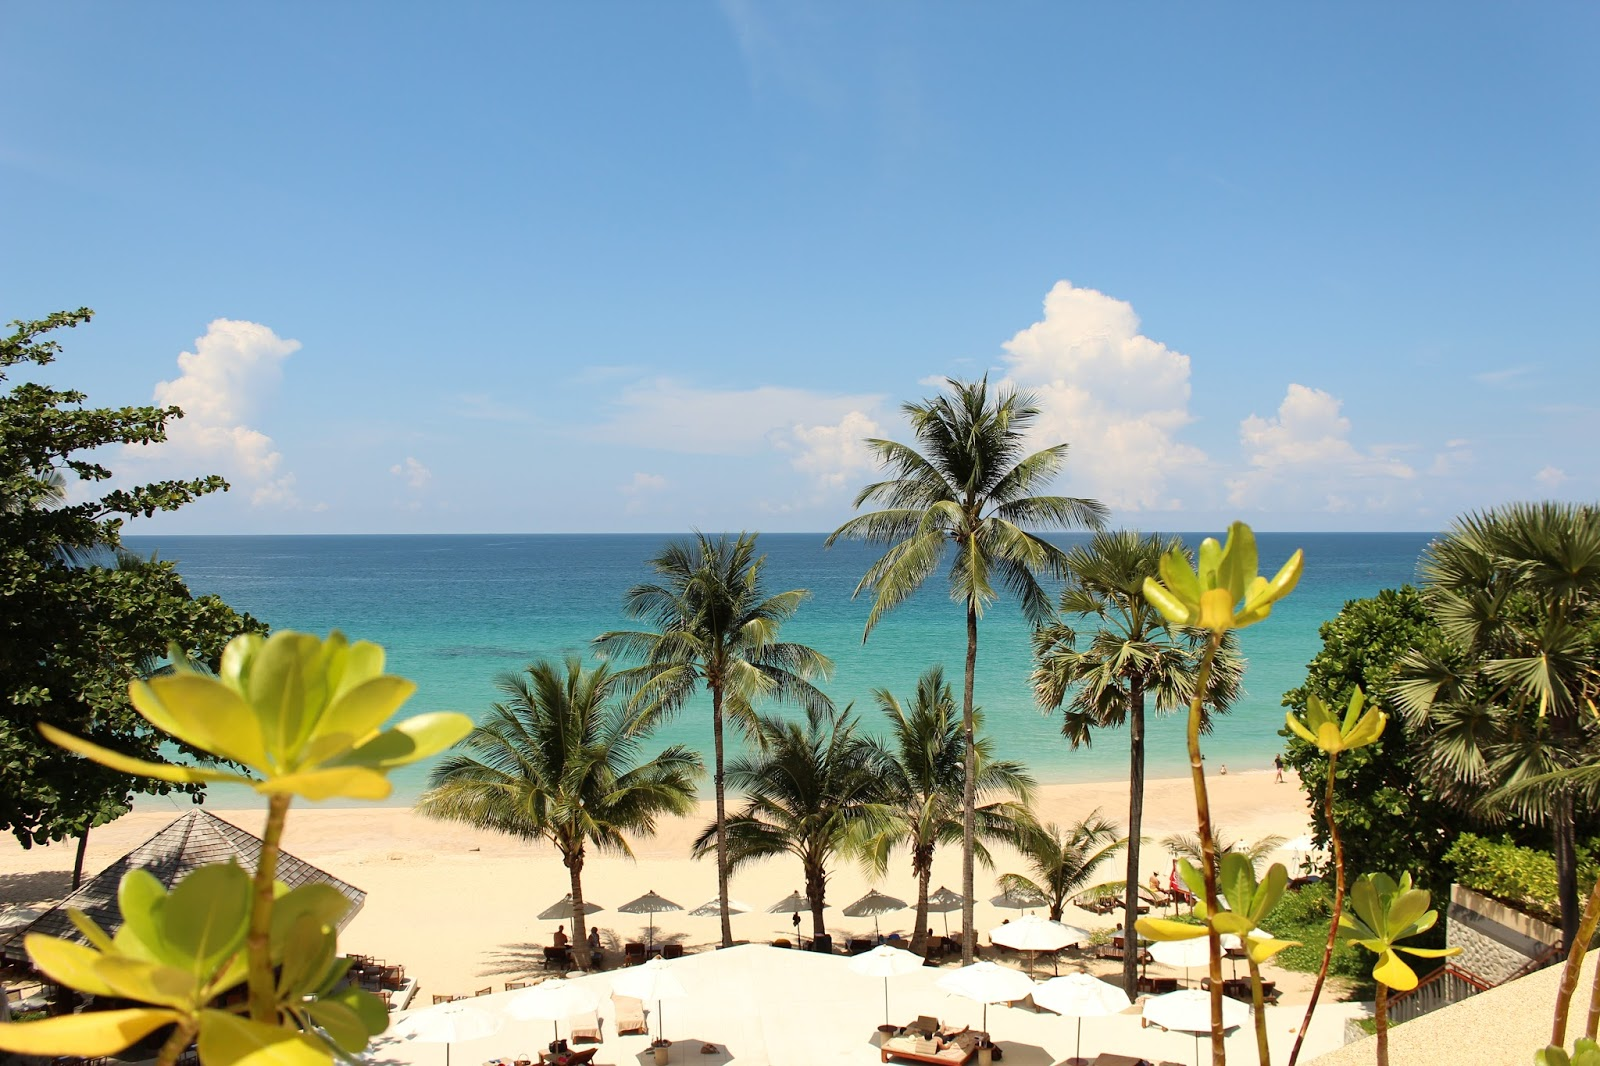 Thailand Part 1: The Surin Phuket | A Polished Palate